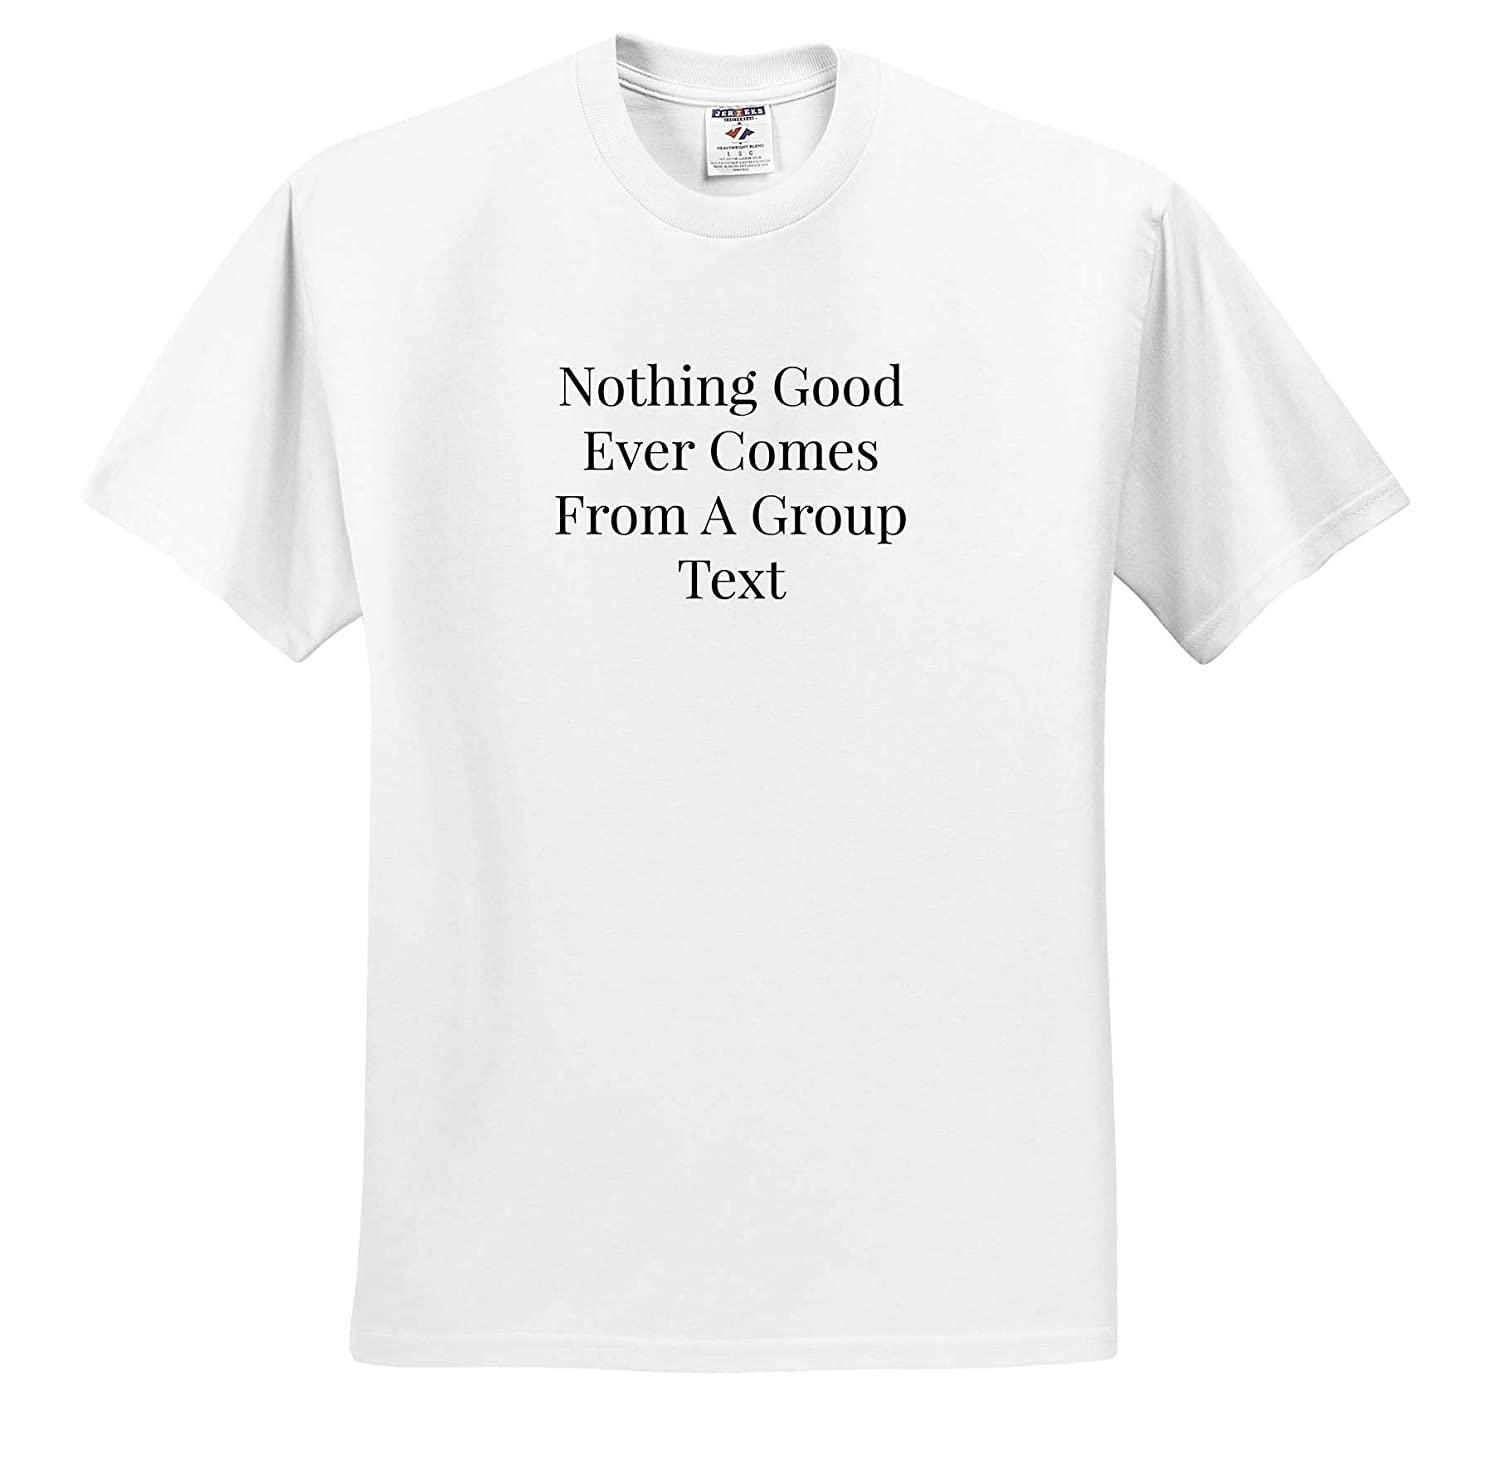 ts/_317425 Adult T-Shirt XL 3dRose Carrie Merchant Image Quote Image of Nothing Good Comes from A Group Text